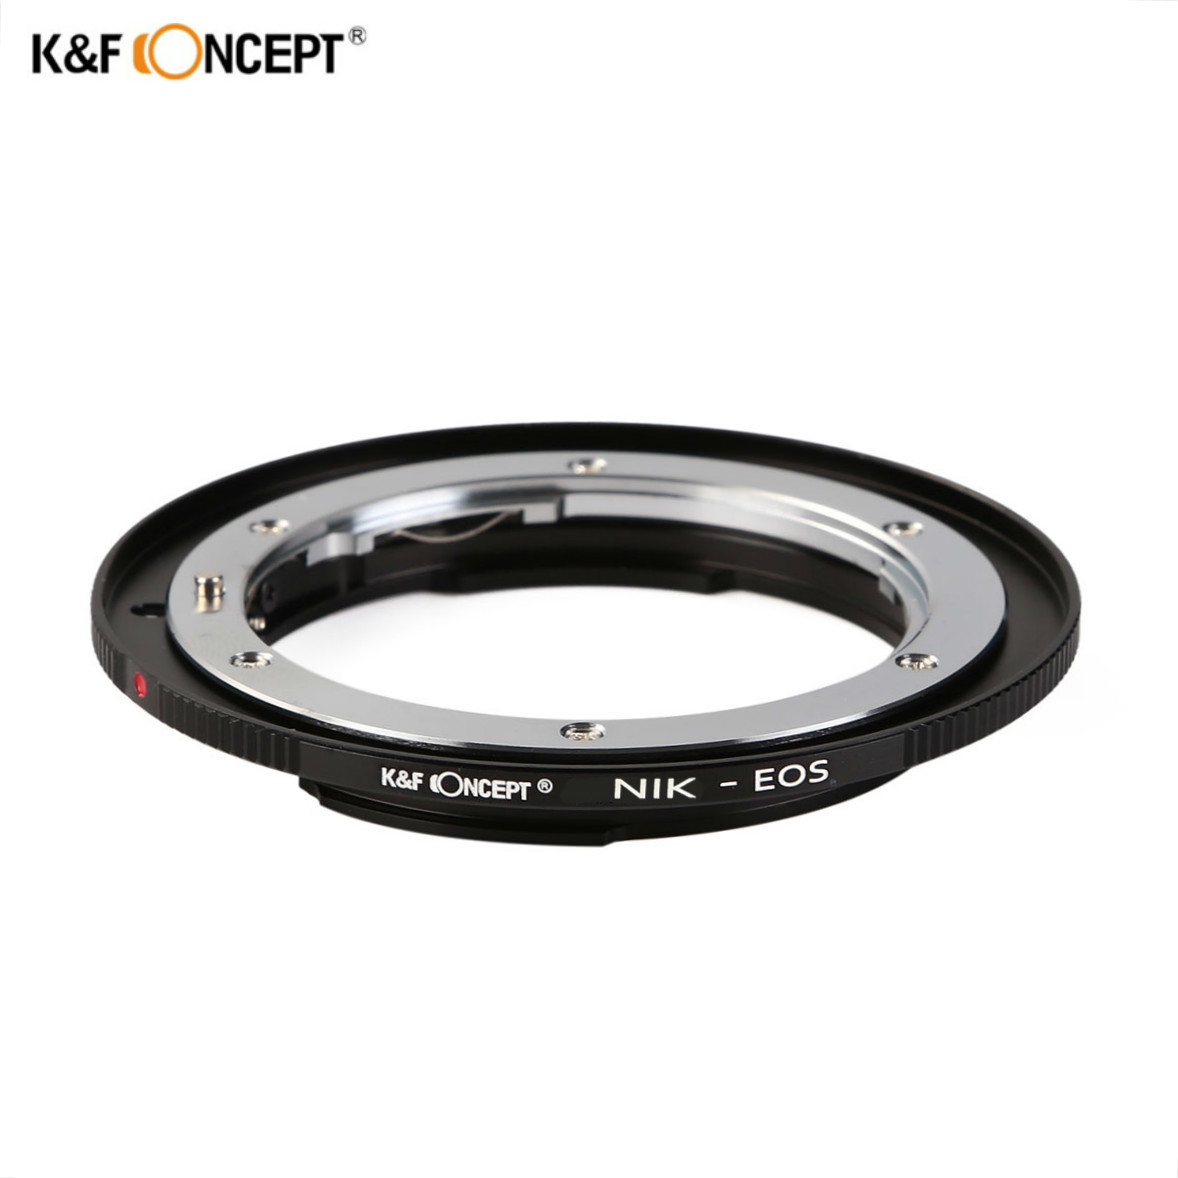 K F CONCEPT Lens Adapter Ring For Nikon F AI Ai S Lens To Canon EOS